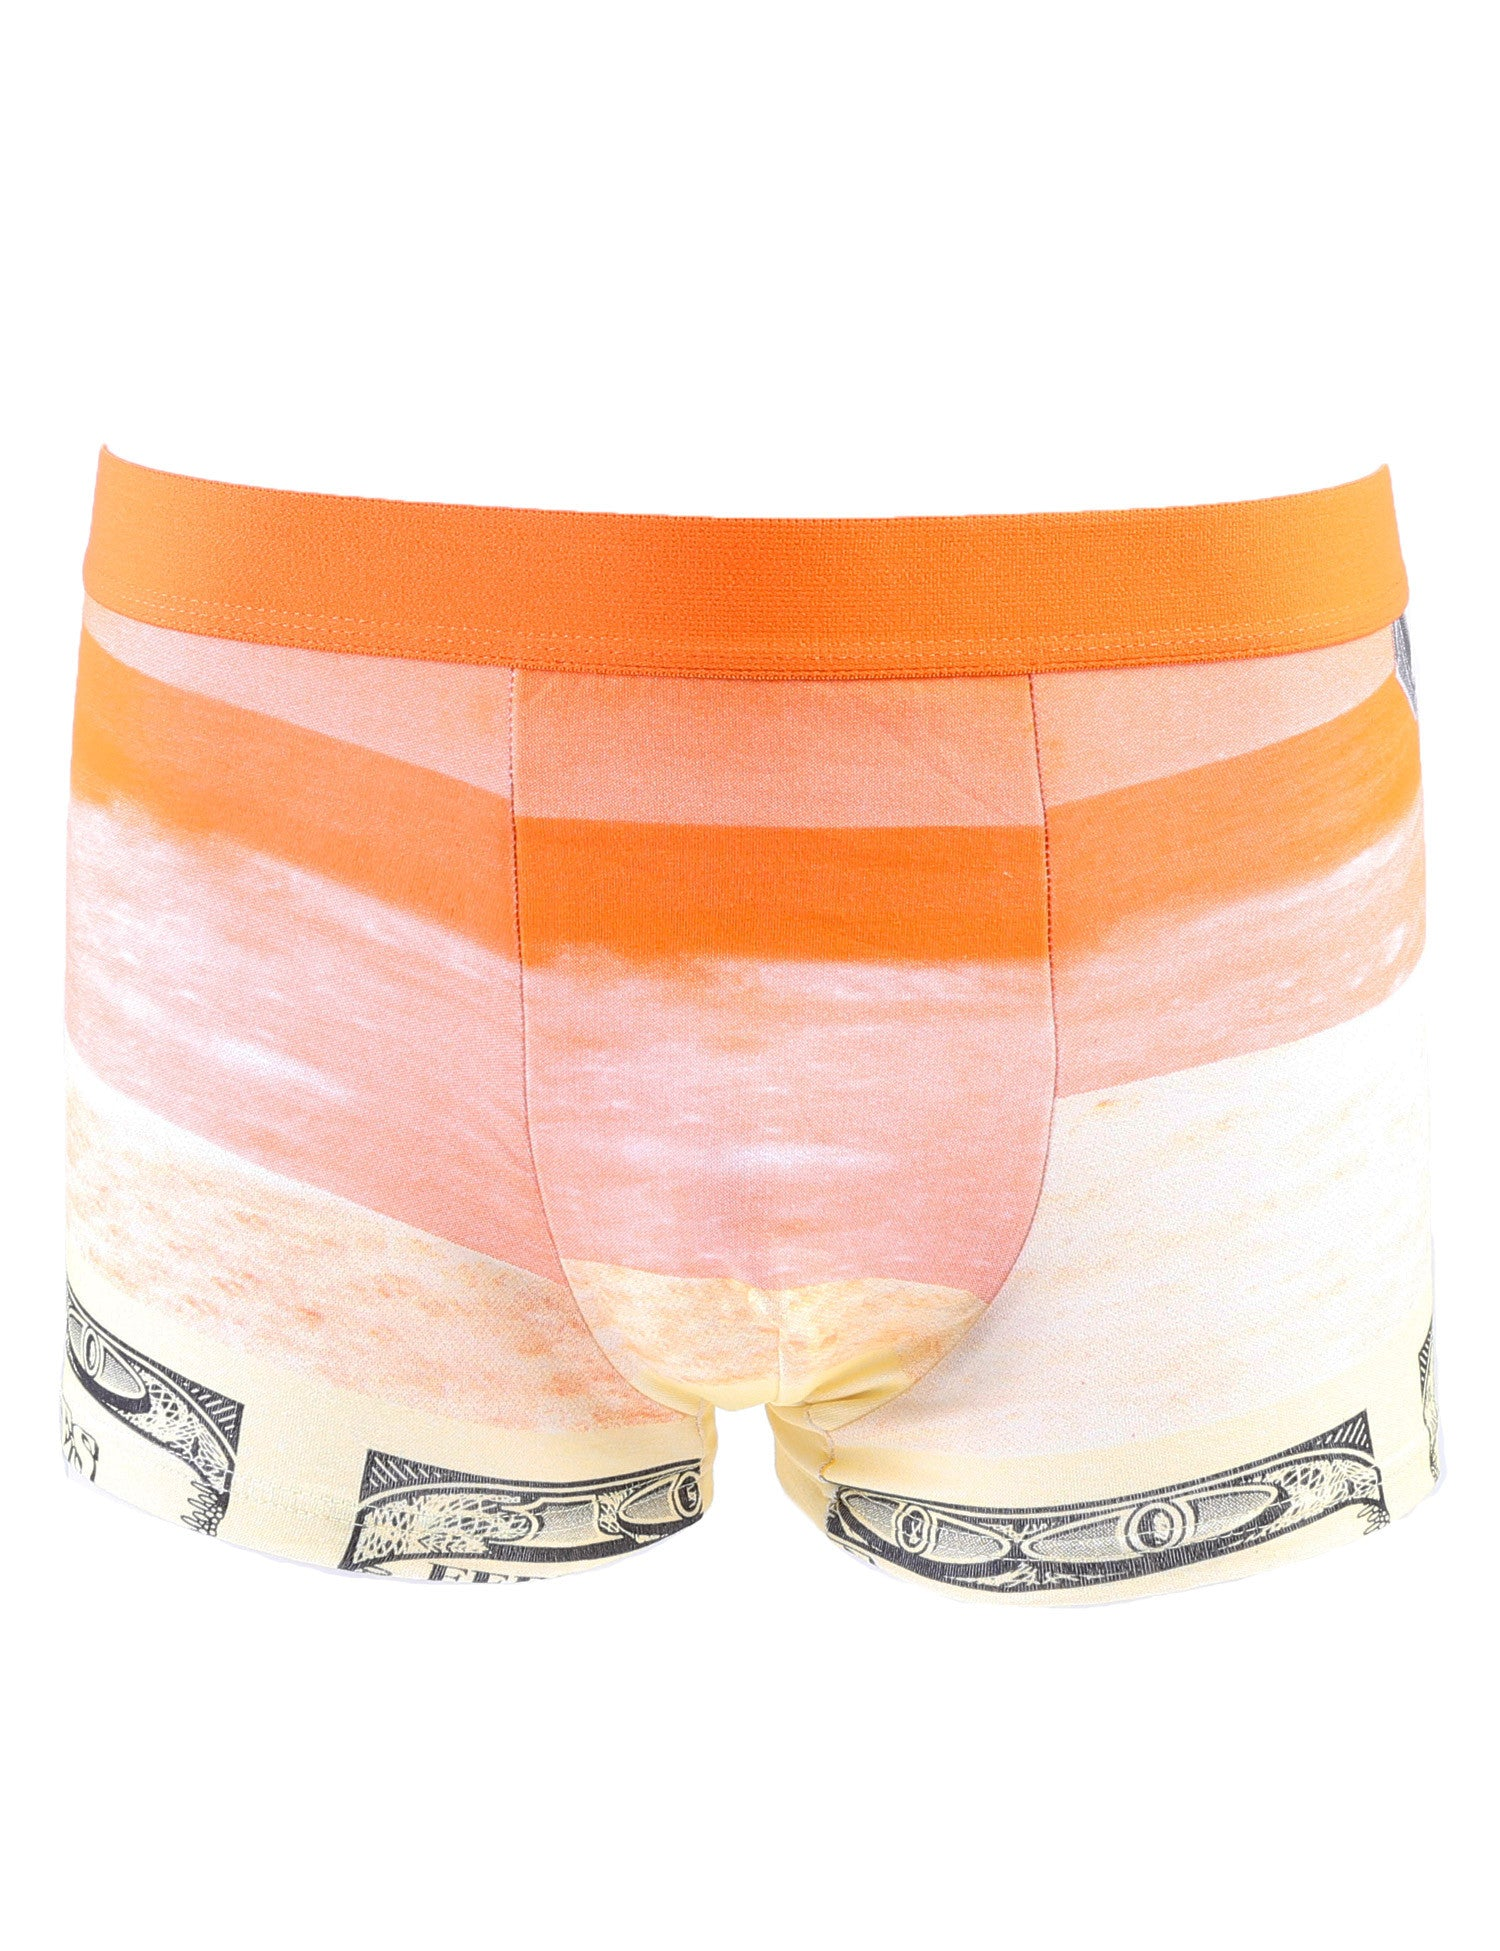 Crazyman Boxers 2419 Orange